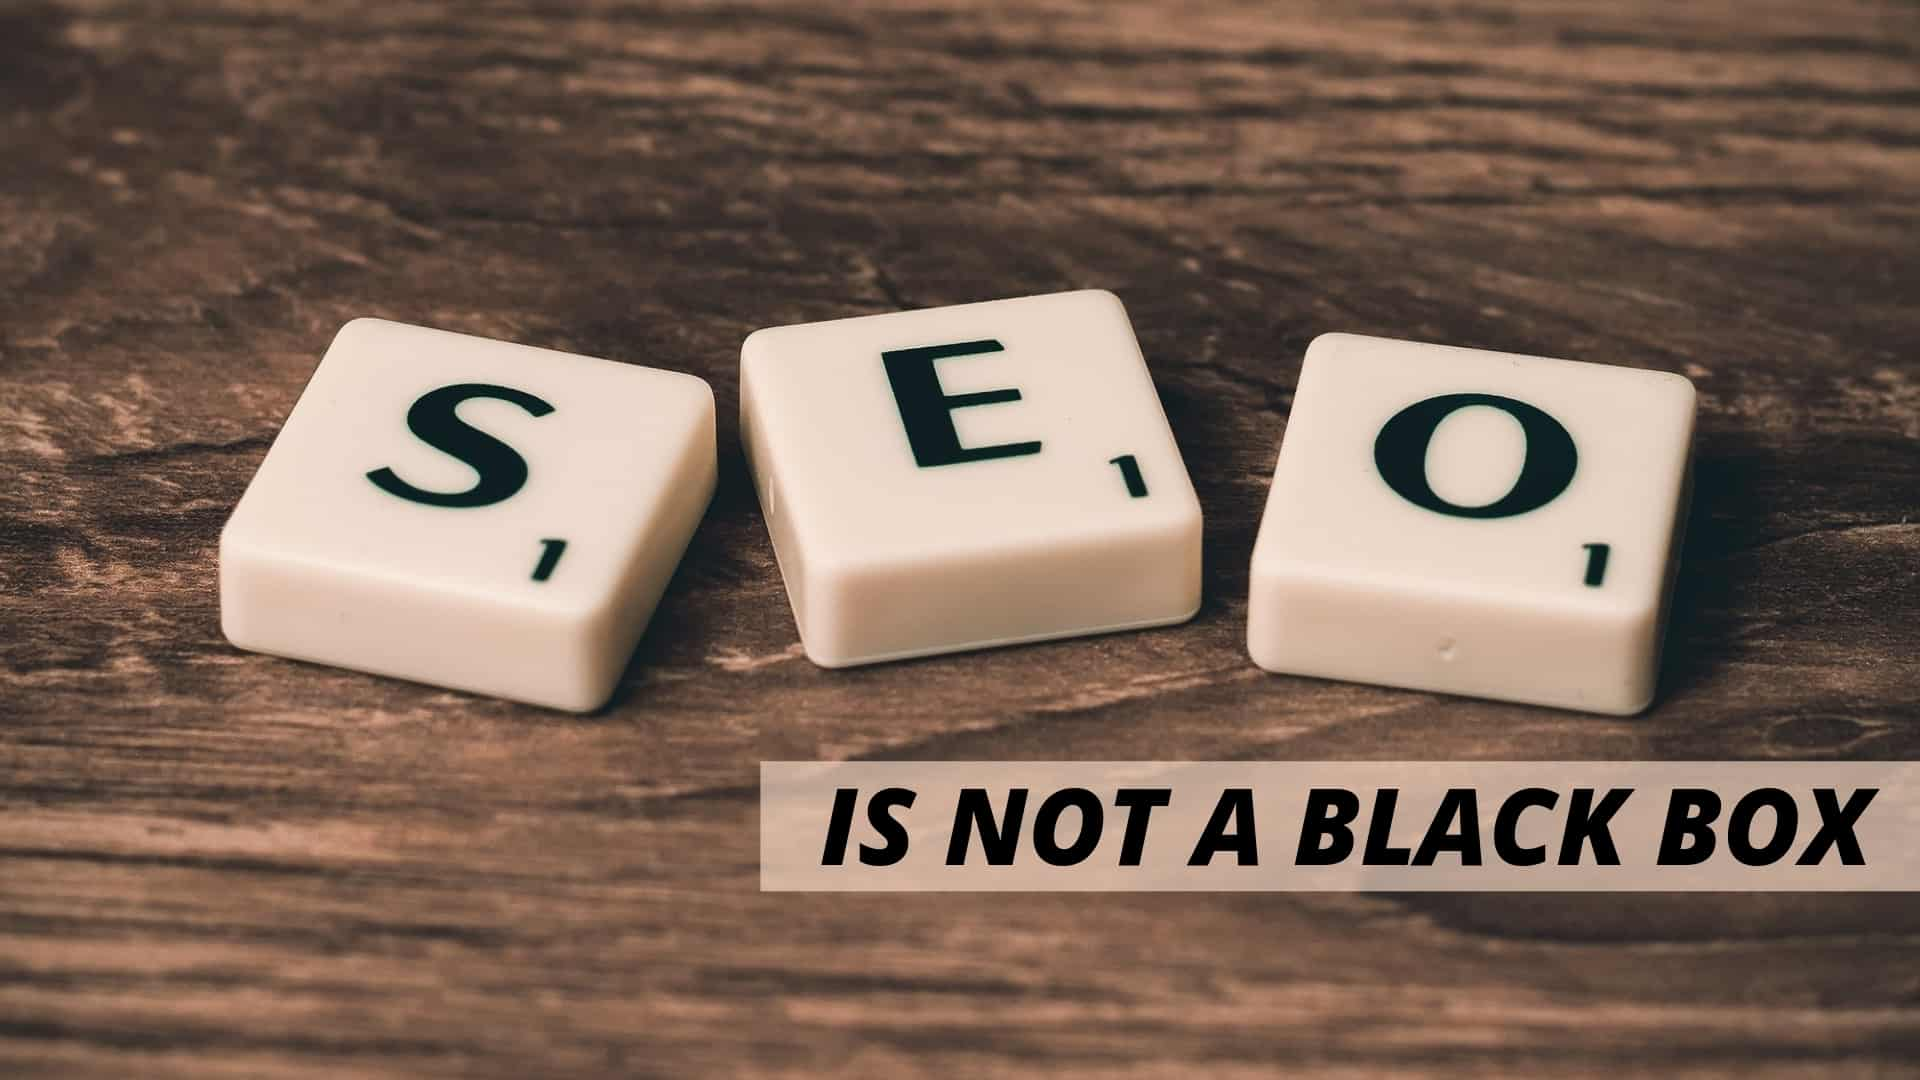 SEO Is Not A Black Box